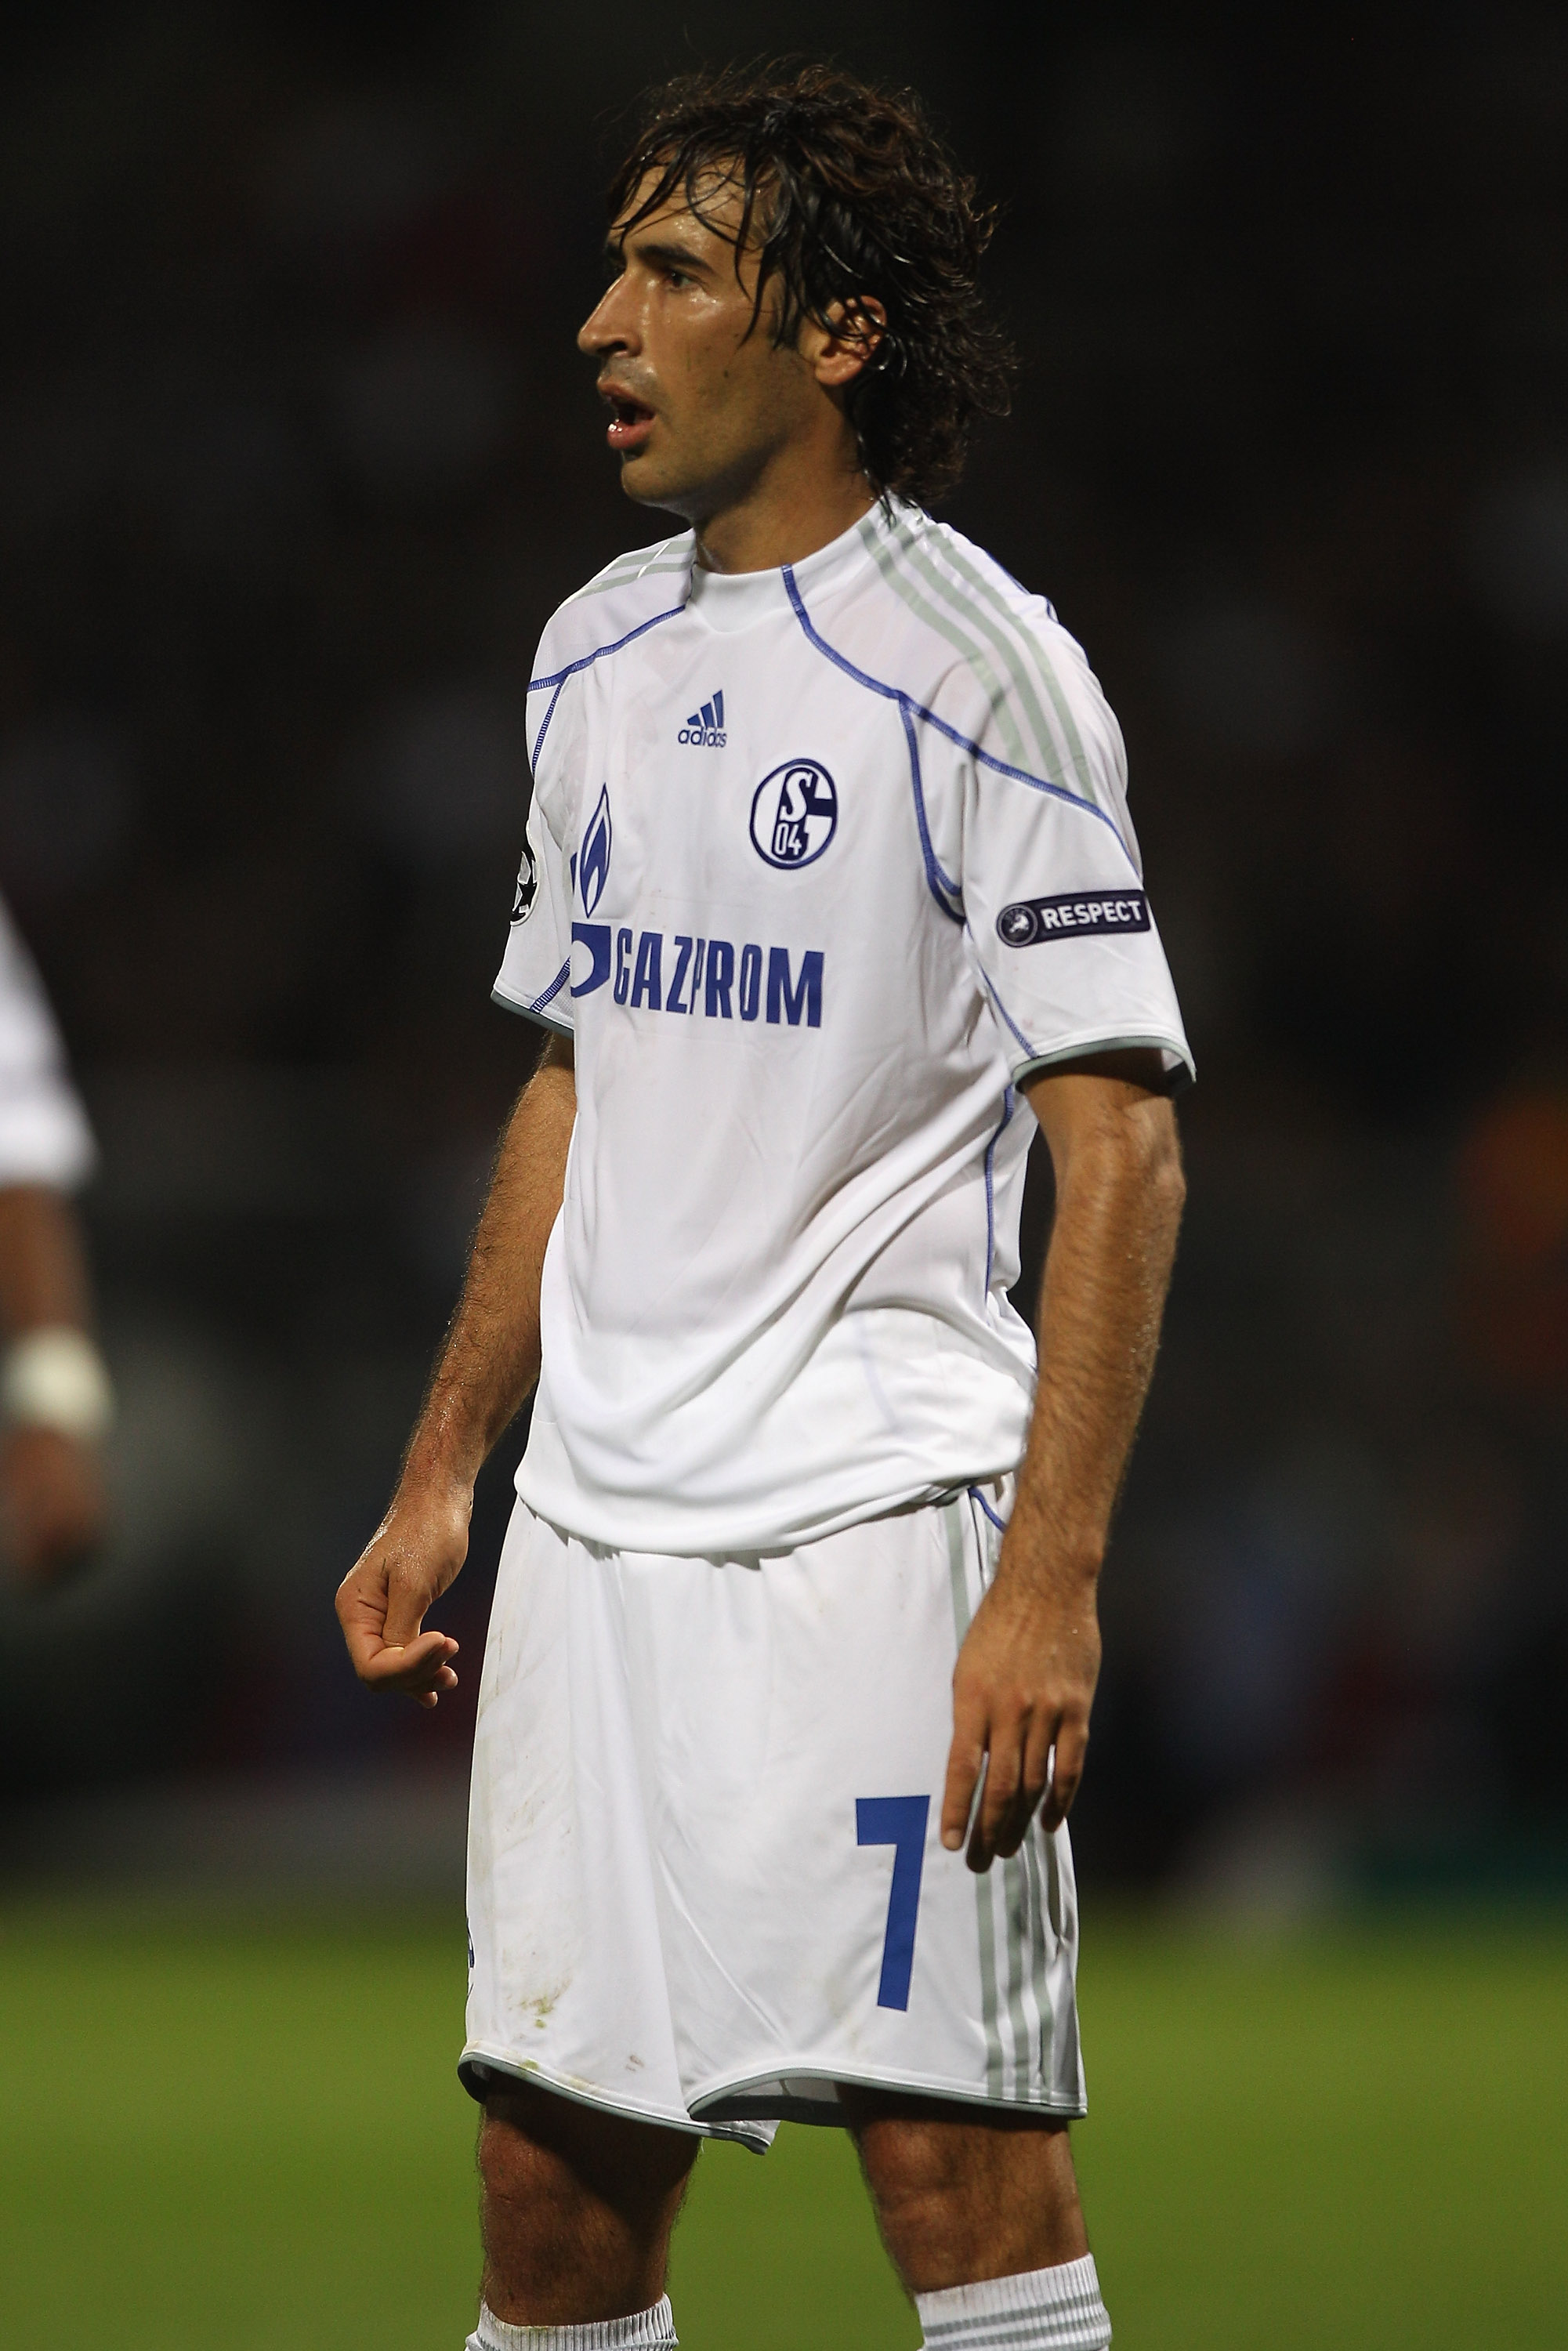 LYON, FRANCE - SEPTEMBER 14: Raul Gonzalez of Schalke during the UEFA Champions League Group B match between Olympique Lyonnais and FC Schalke 04 at the Stade de Gerland on September 14, 2010 in Lyon, France.  (Photo by Michael Steele/Getty Images)